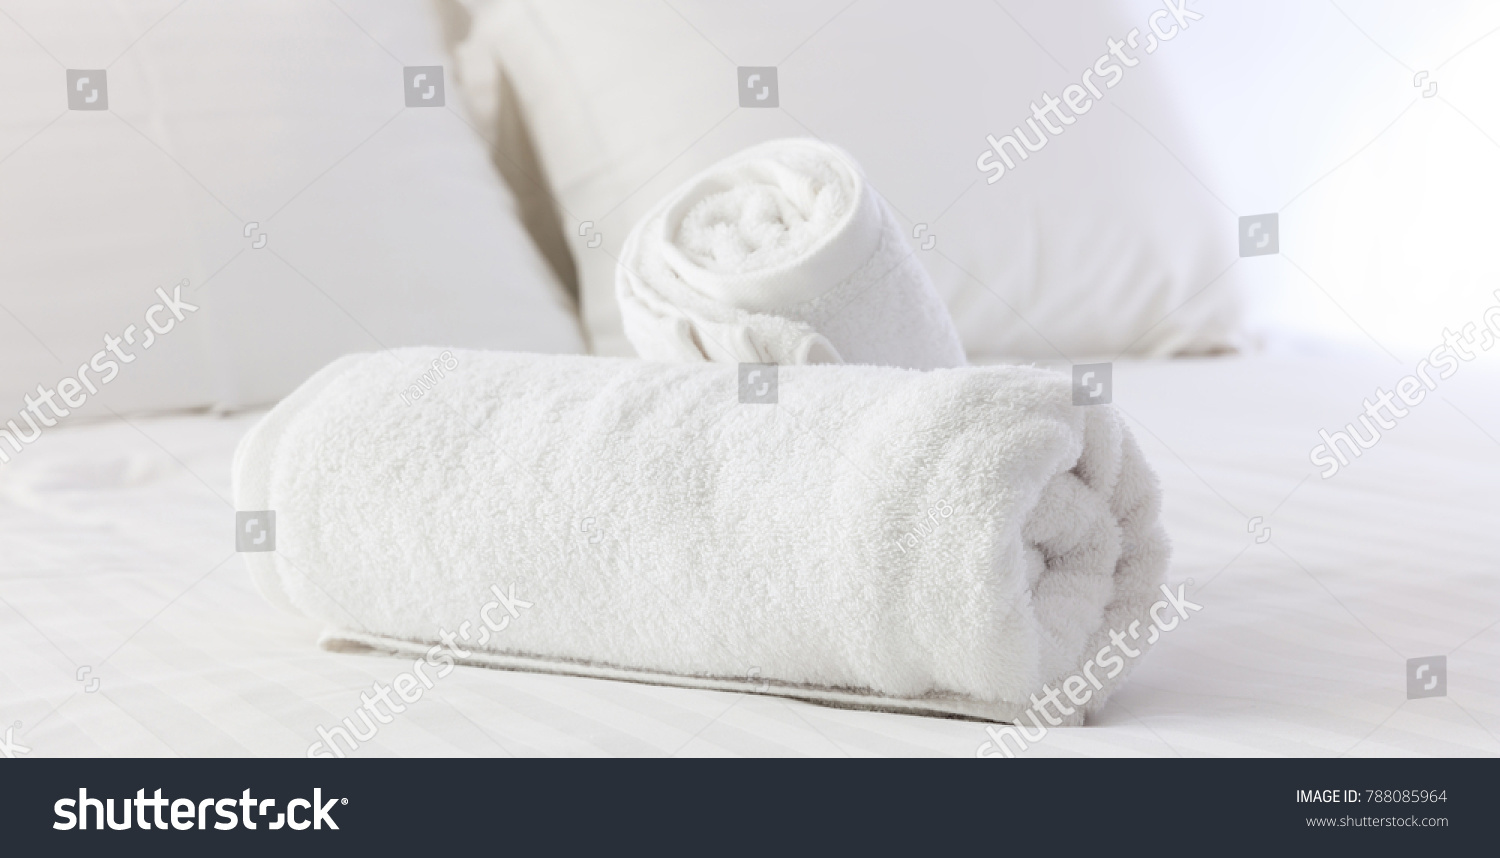 Hotels Bedroom White Fluffy Rolled Towels Stock Photo Download Now